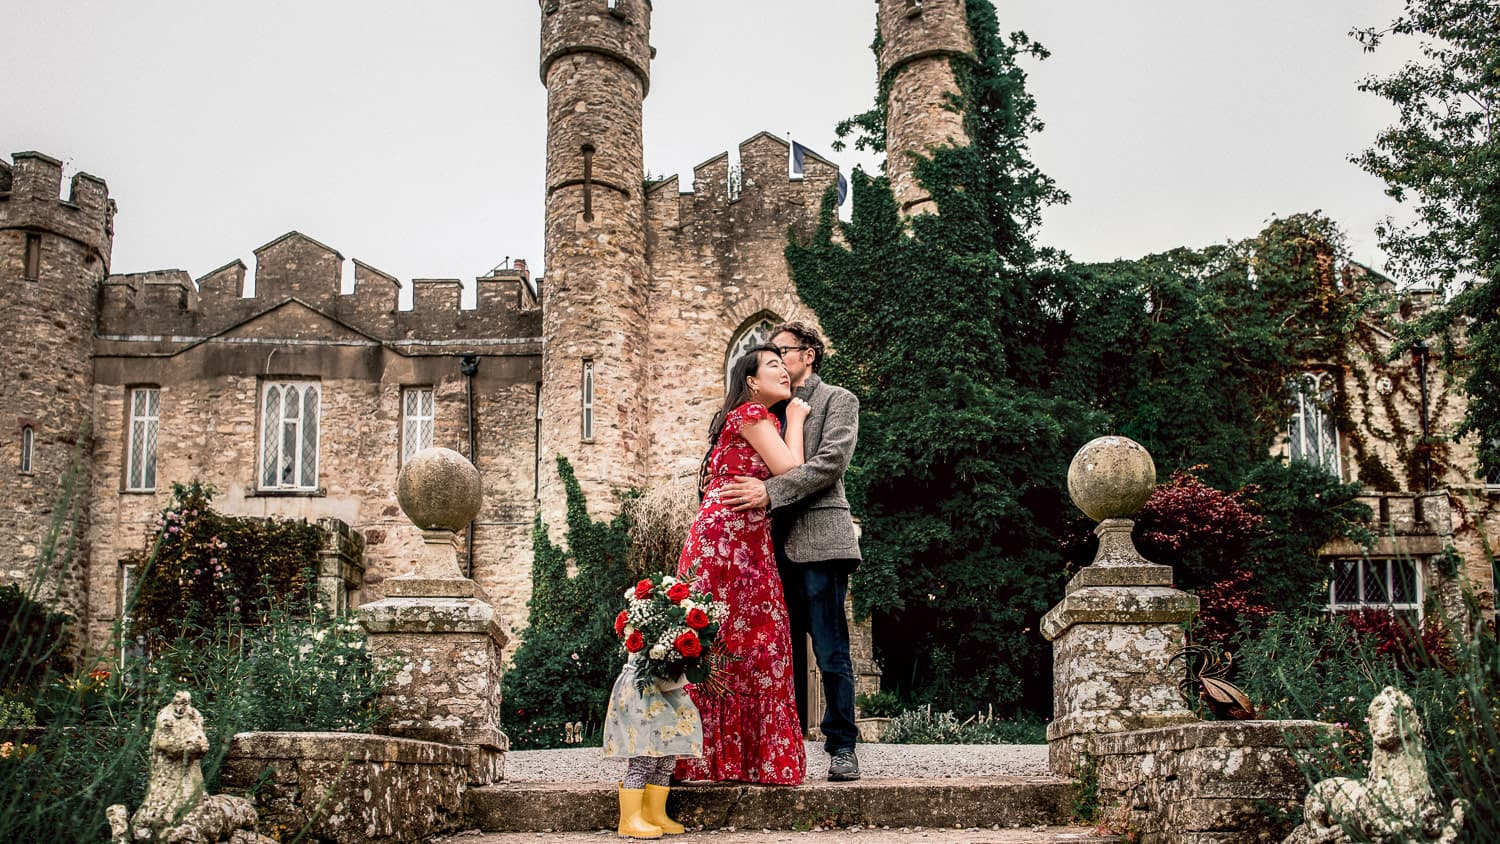 Kissing in front of the English castle Airbnb we stayed at for our anniversary.